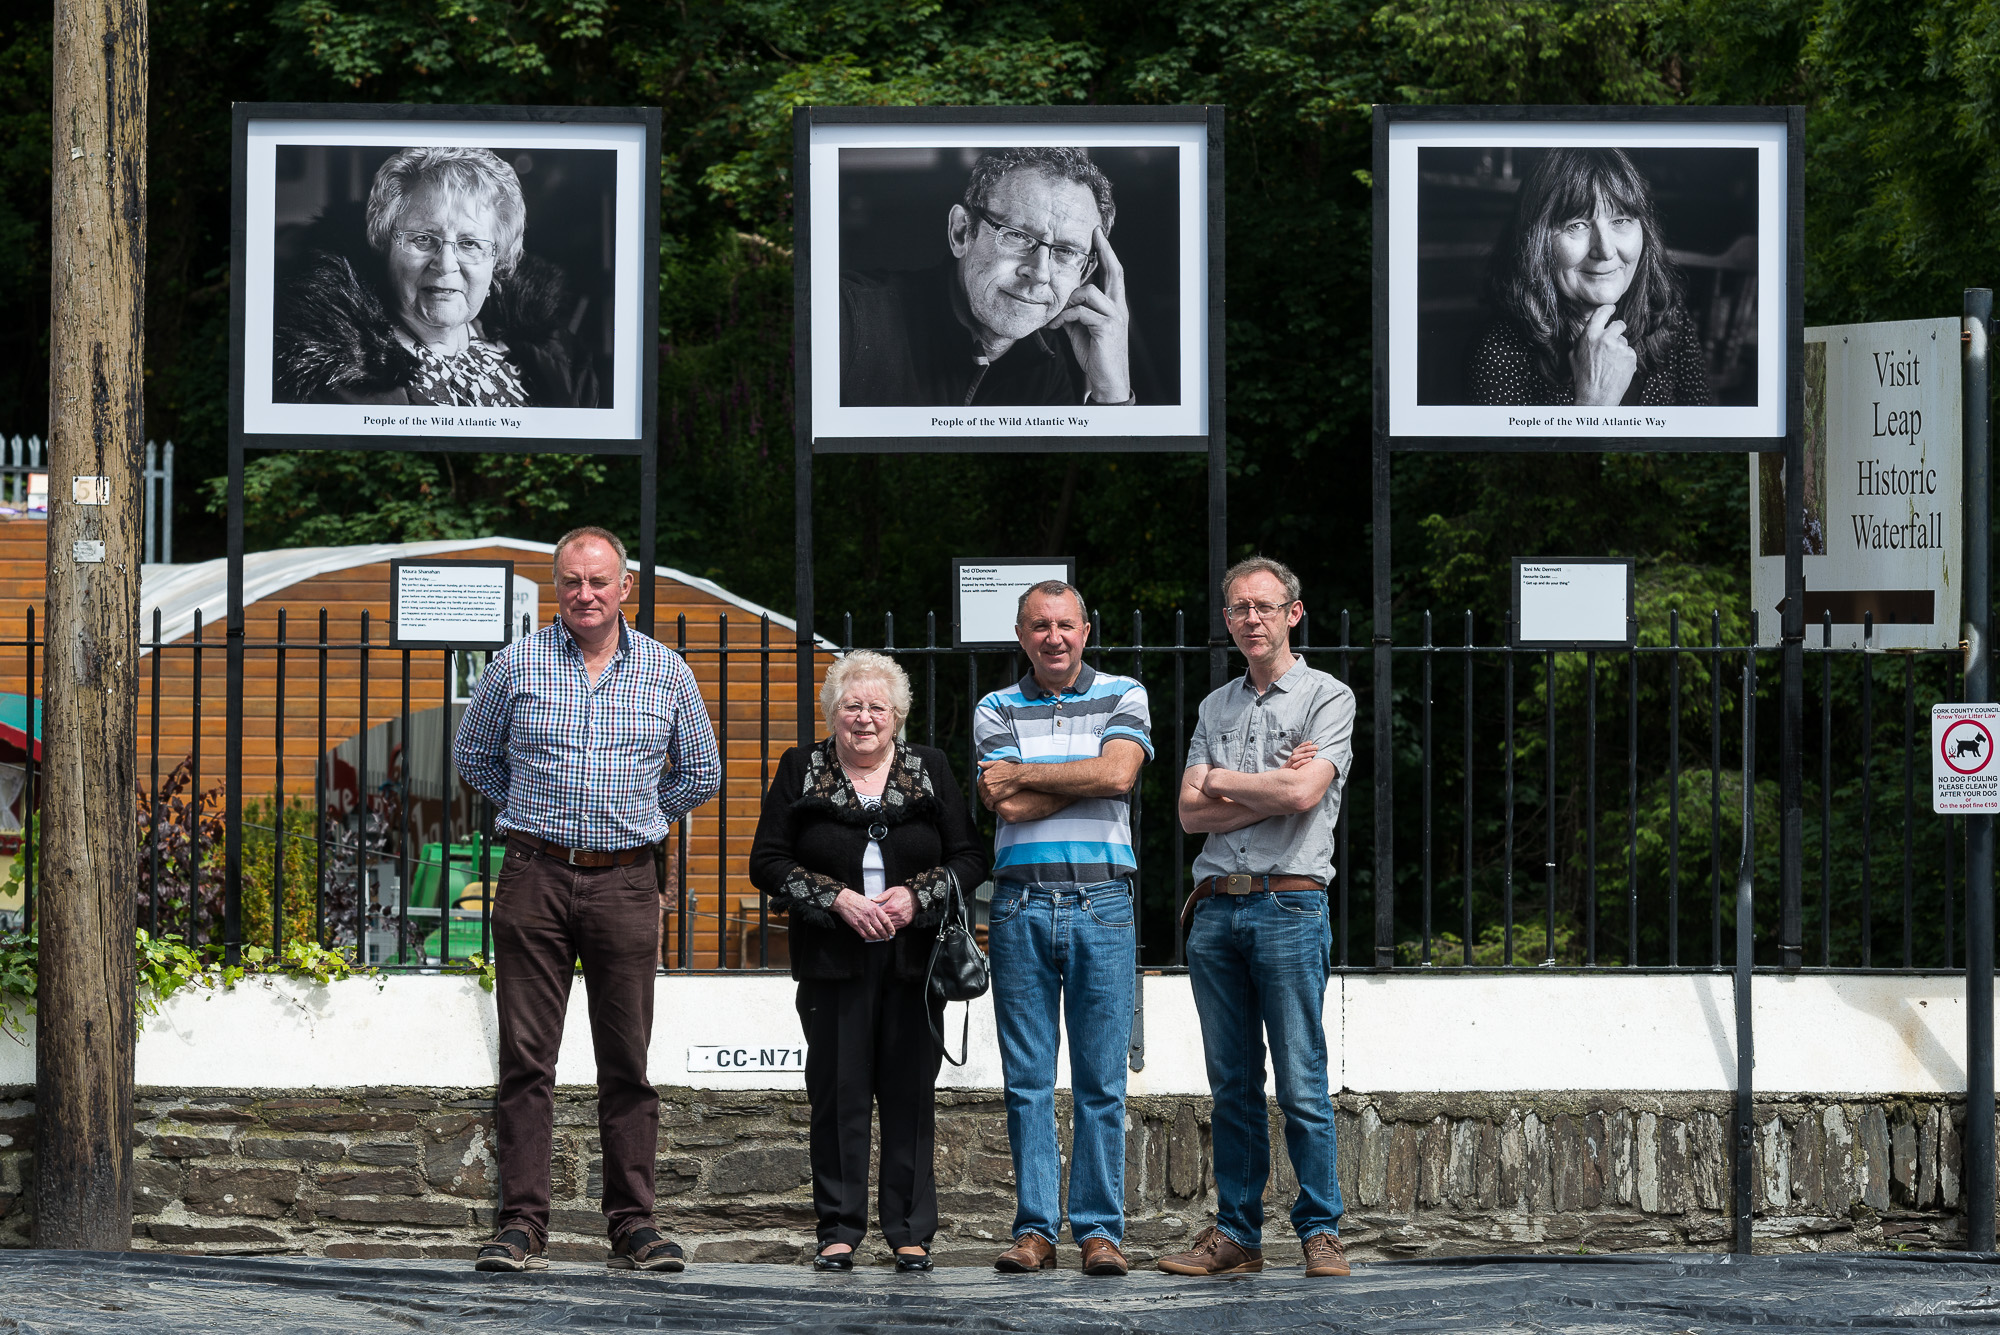 Portraits of people from Leap in West Cork being displayed in the town.